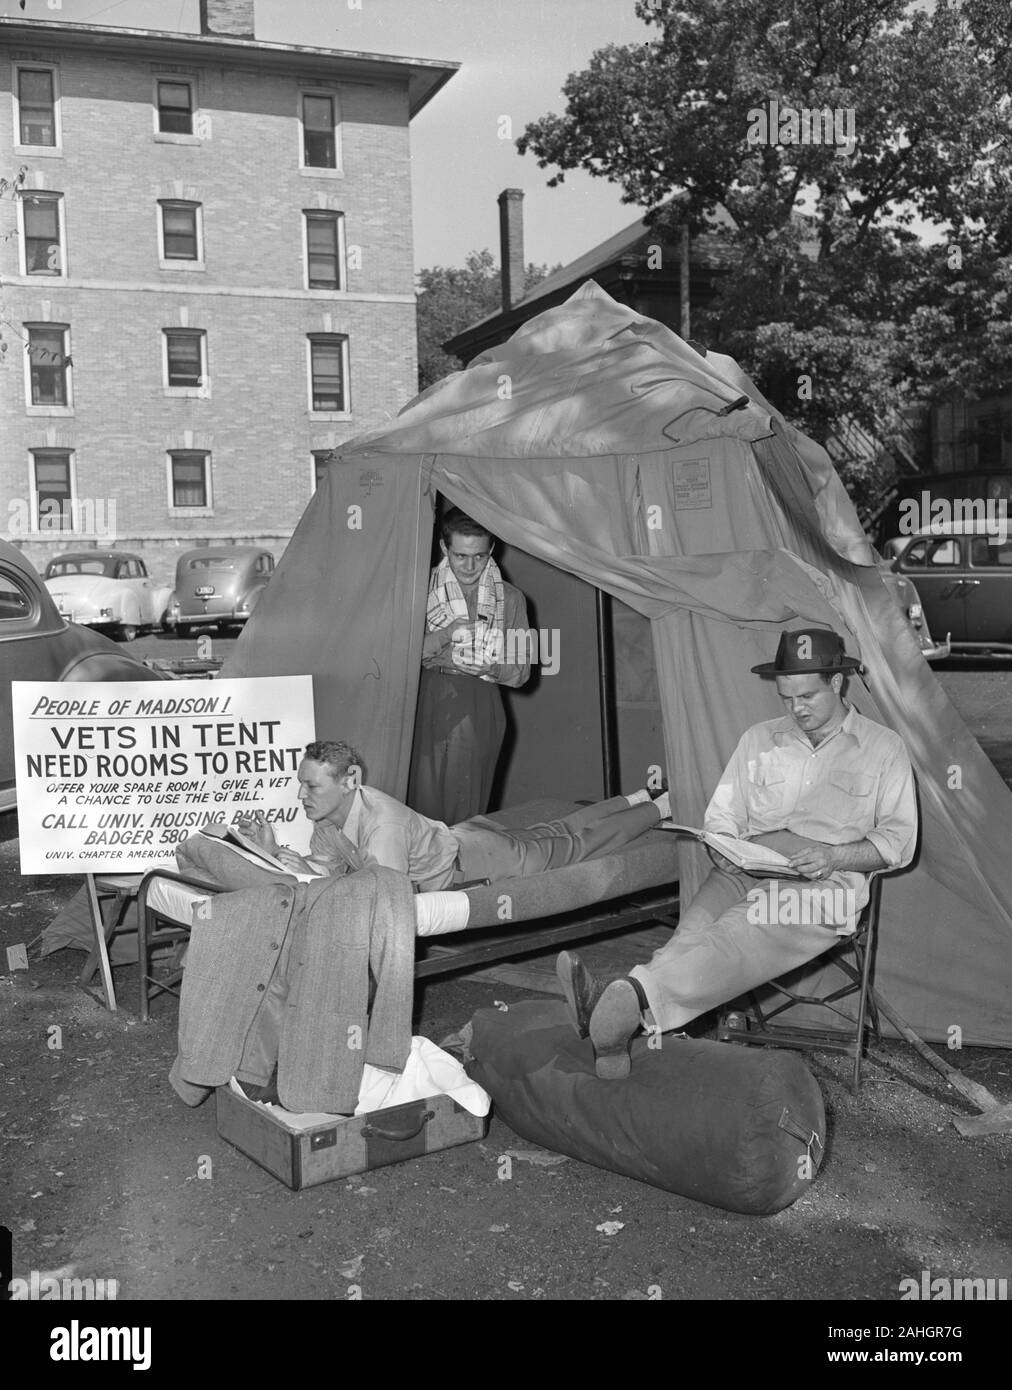 Veterans returning from WWII, without any home to return to. The GI Bill sponsored them to obtain housing. Stock Photo